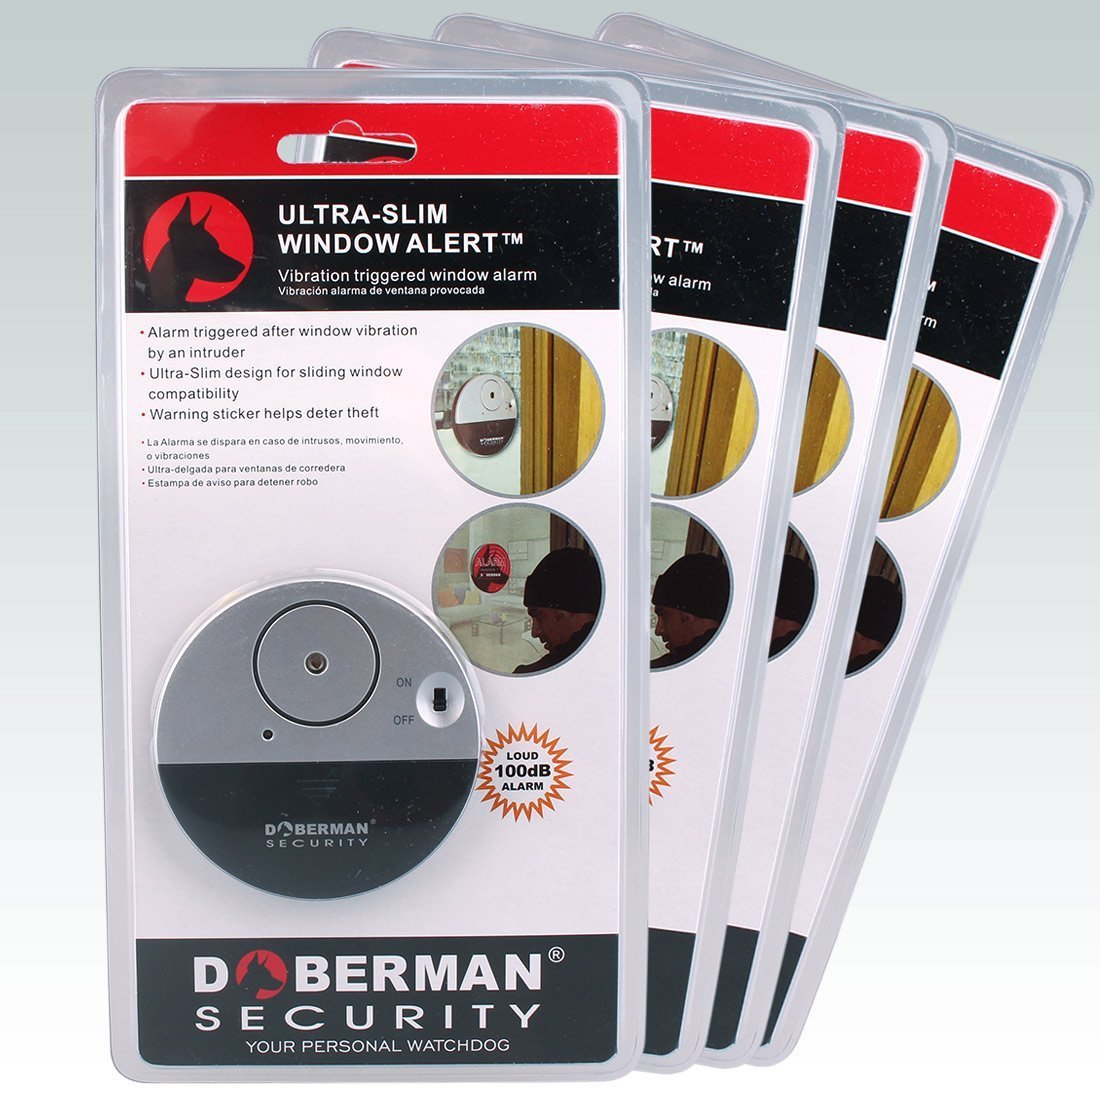 Alarma casa, WER Alarma Hogar de Seguridad de Ventana Dóberman Ultrafino DOBERMAN SECURITY Ultra-Slim Window Alarm